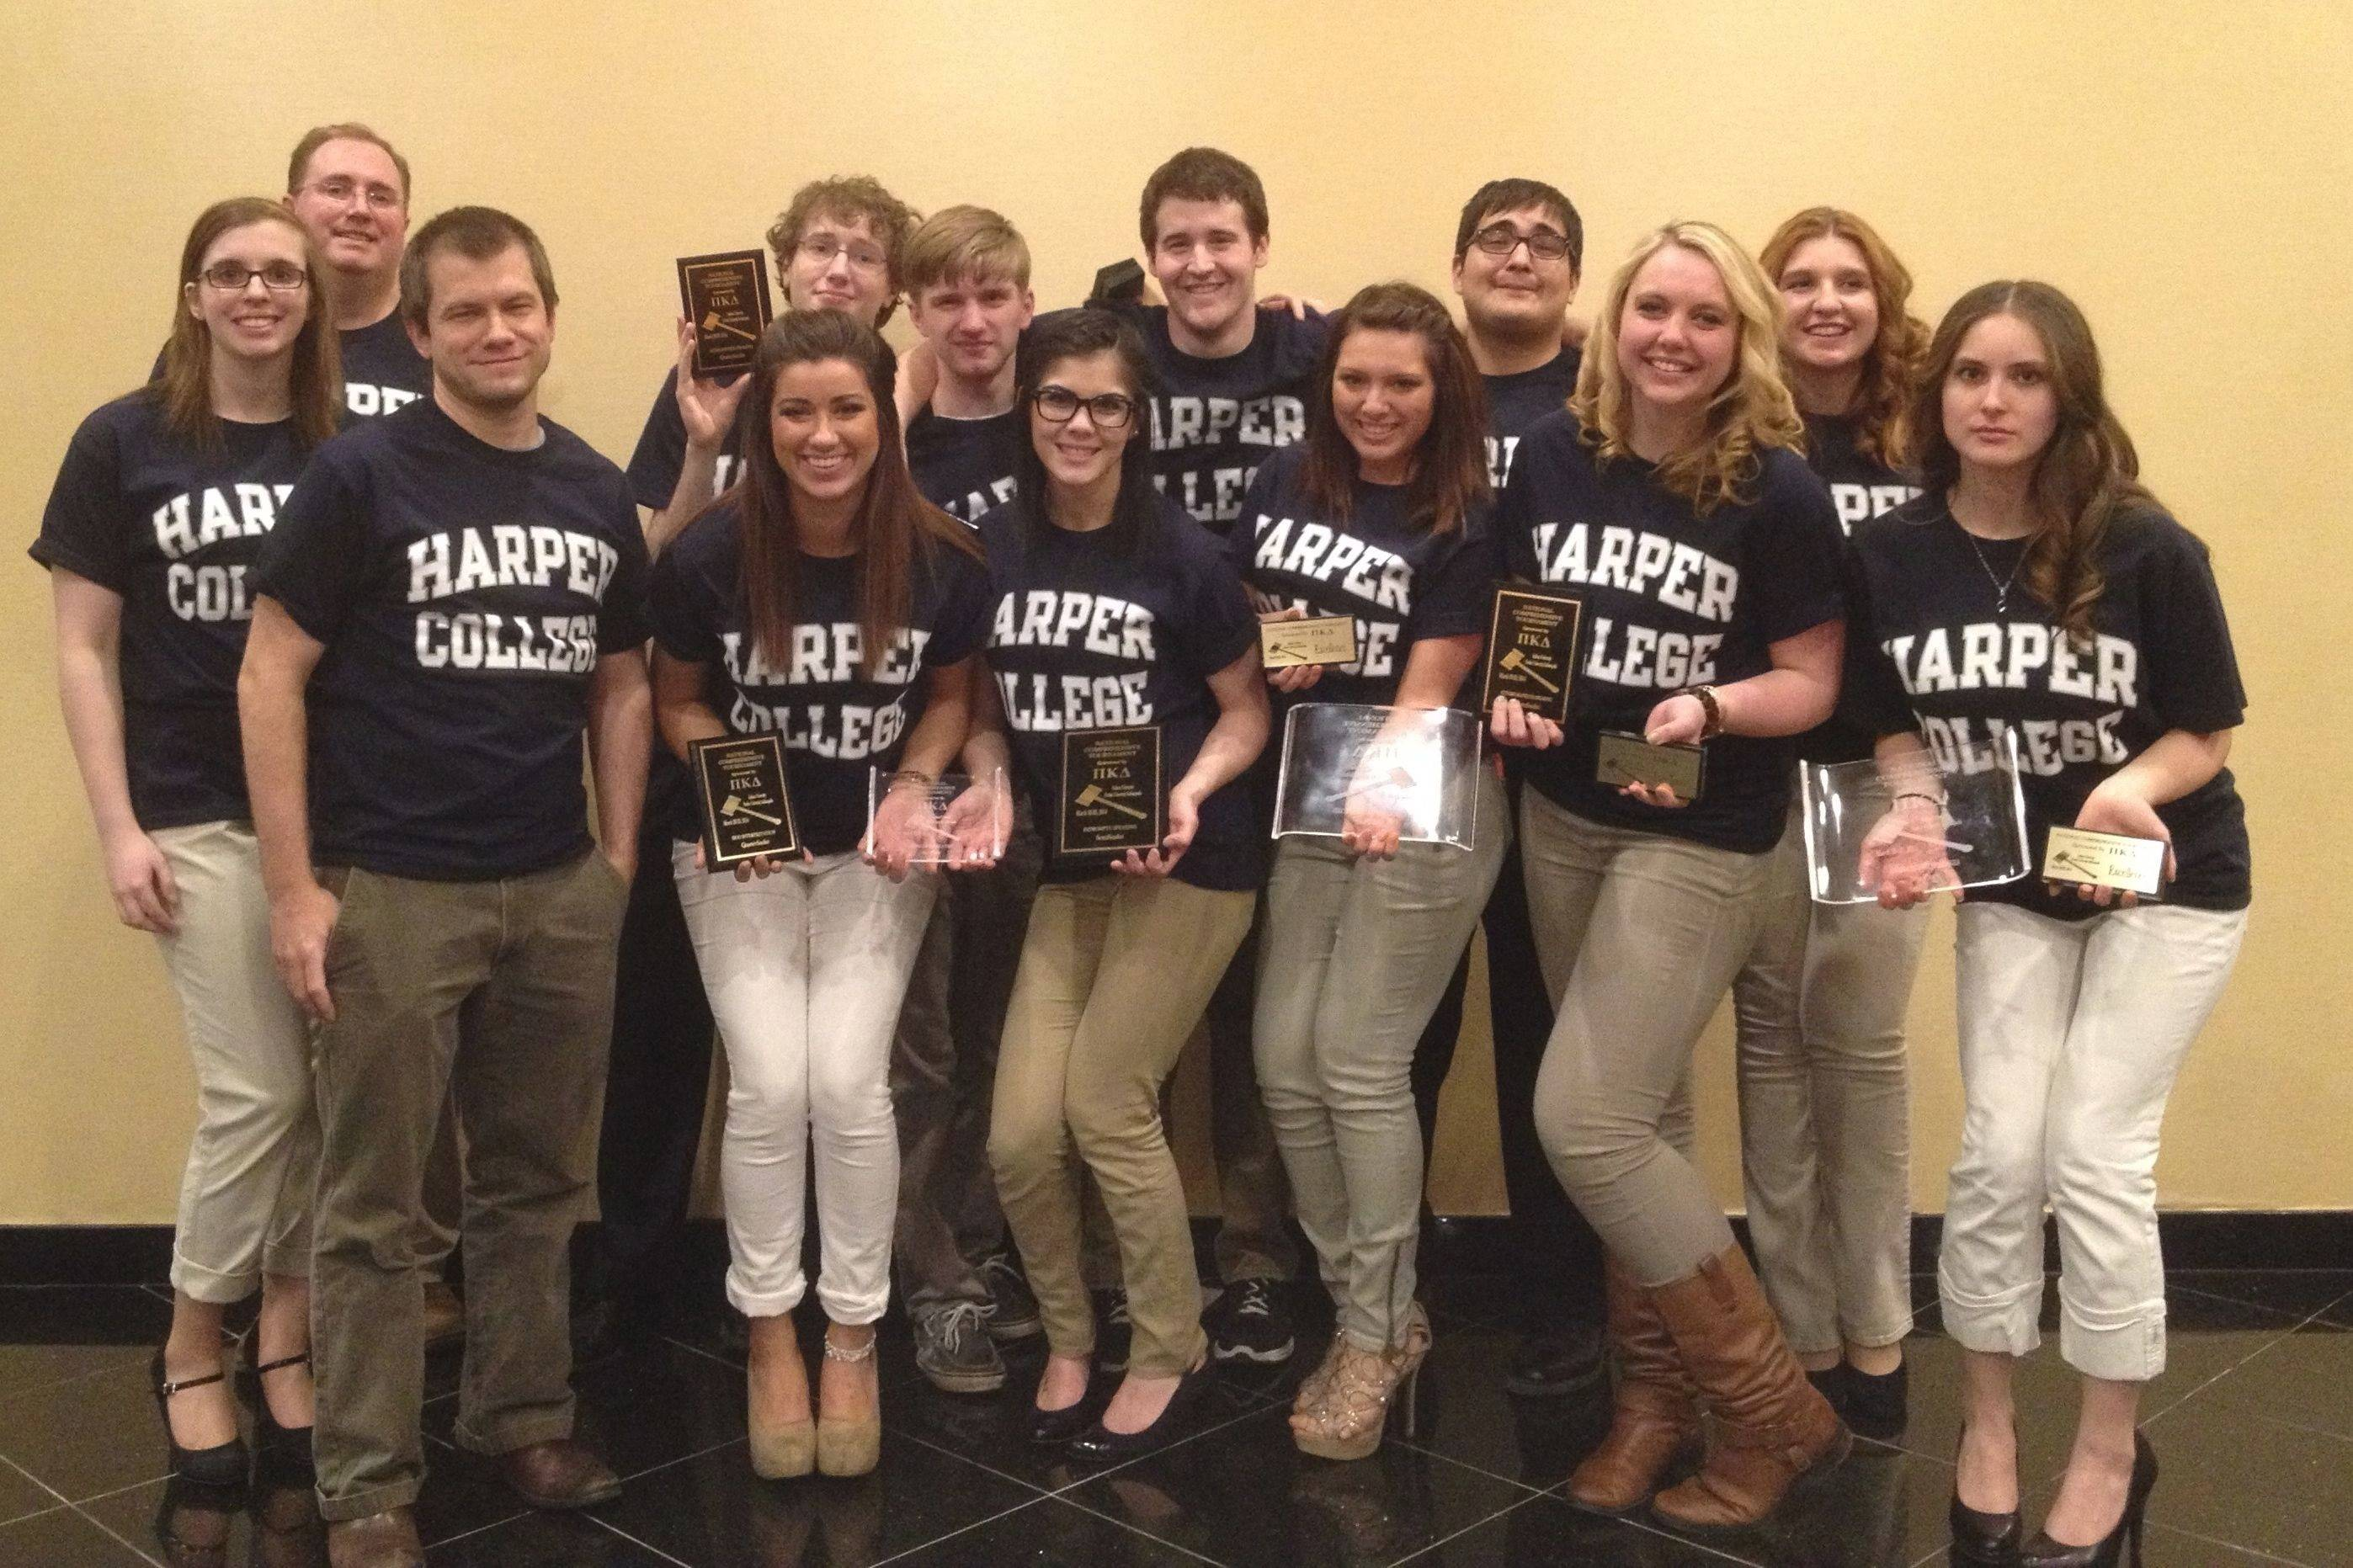 The Harper College Speech Team returned from the Pi Kappa Delta National Speech and Debate tournament with a first place in the Community College division and a ninth overall finish.